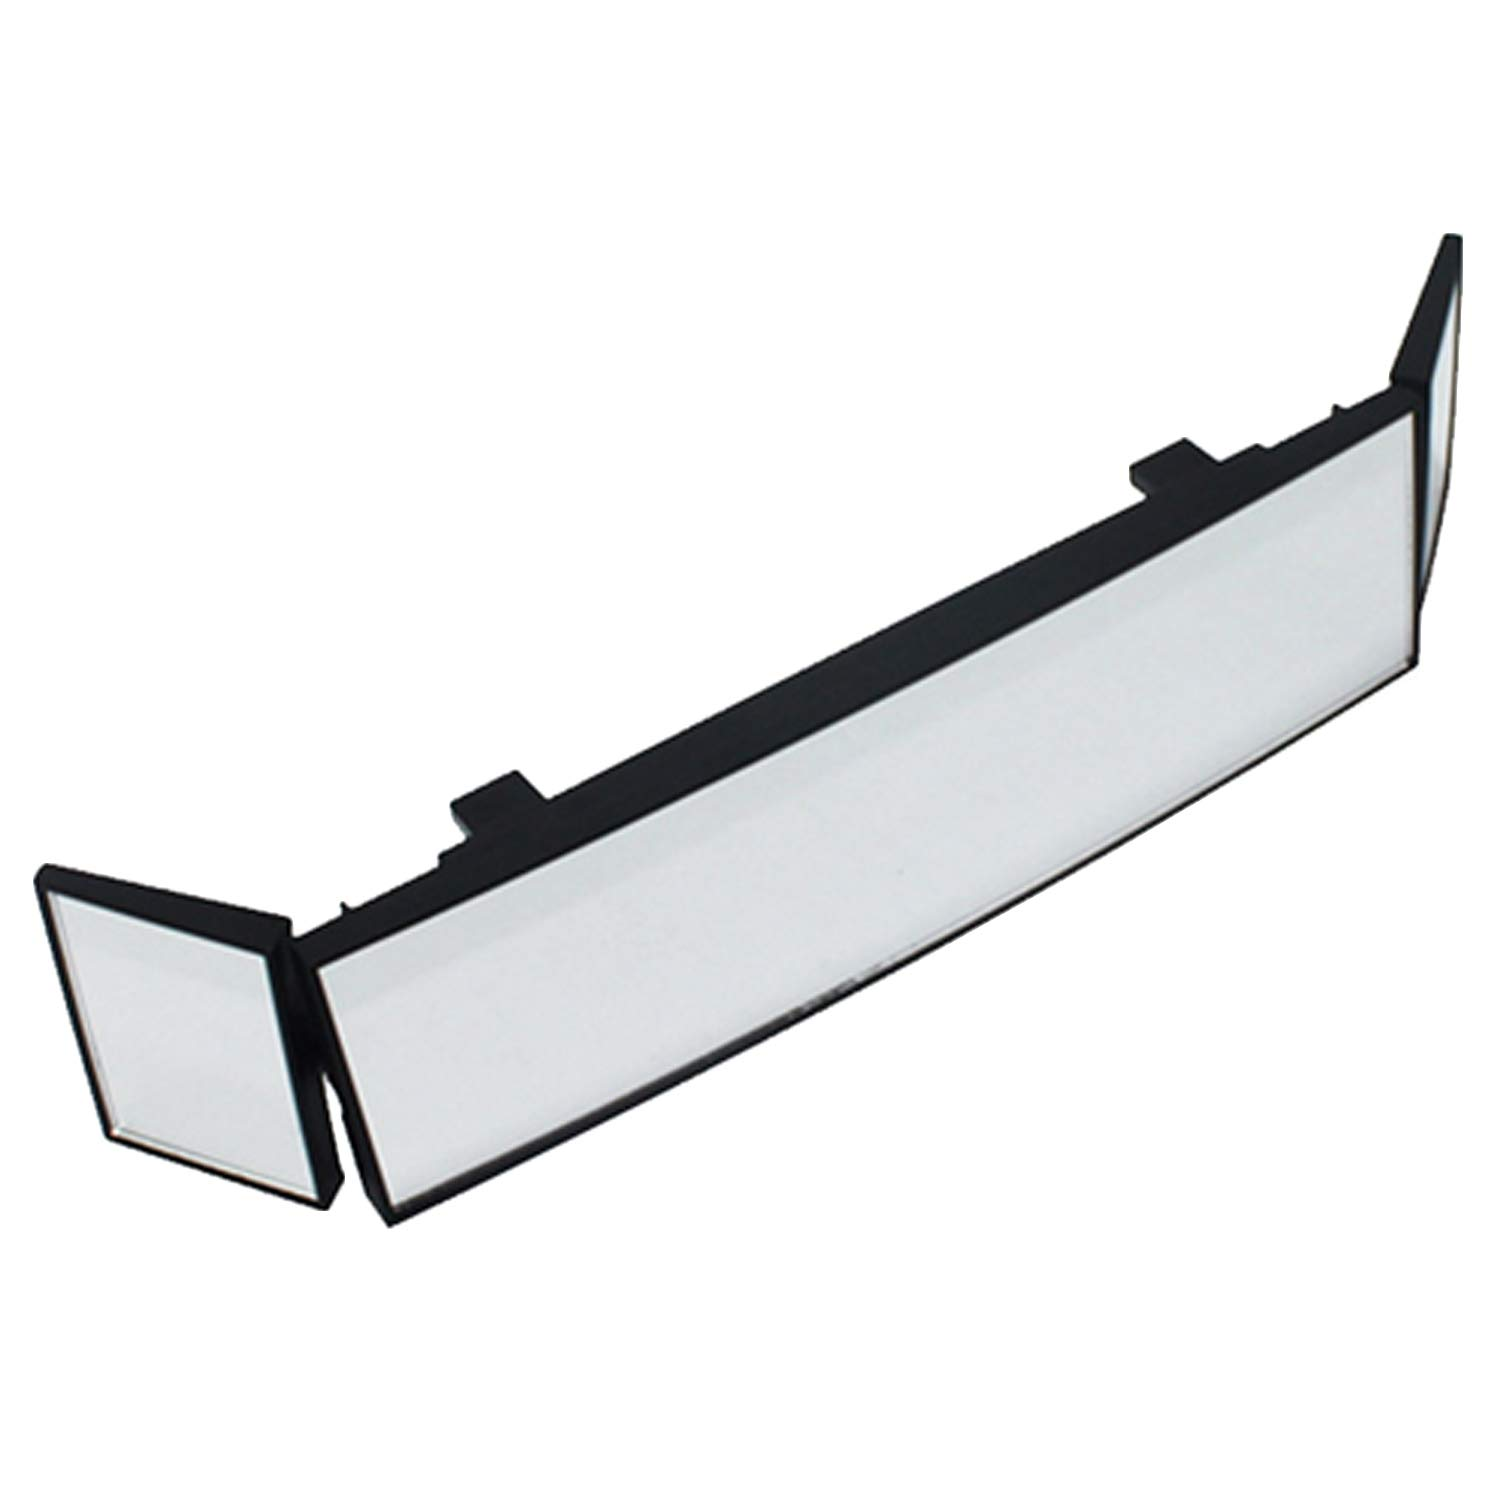 Universal Tri-fold Adjustable Angle HD Car Rearview Rear View Wide Angle Curved Mirror with Card Slot for Cars Vehicle Truck Accessories Vococal P201809210005